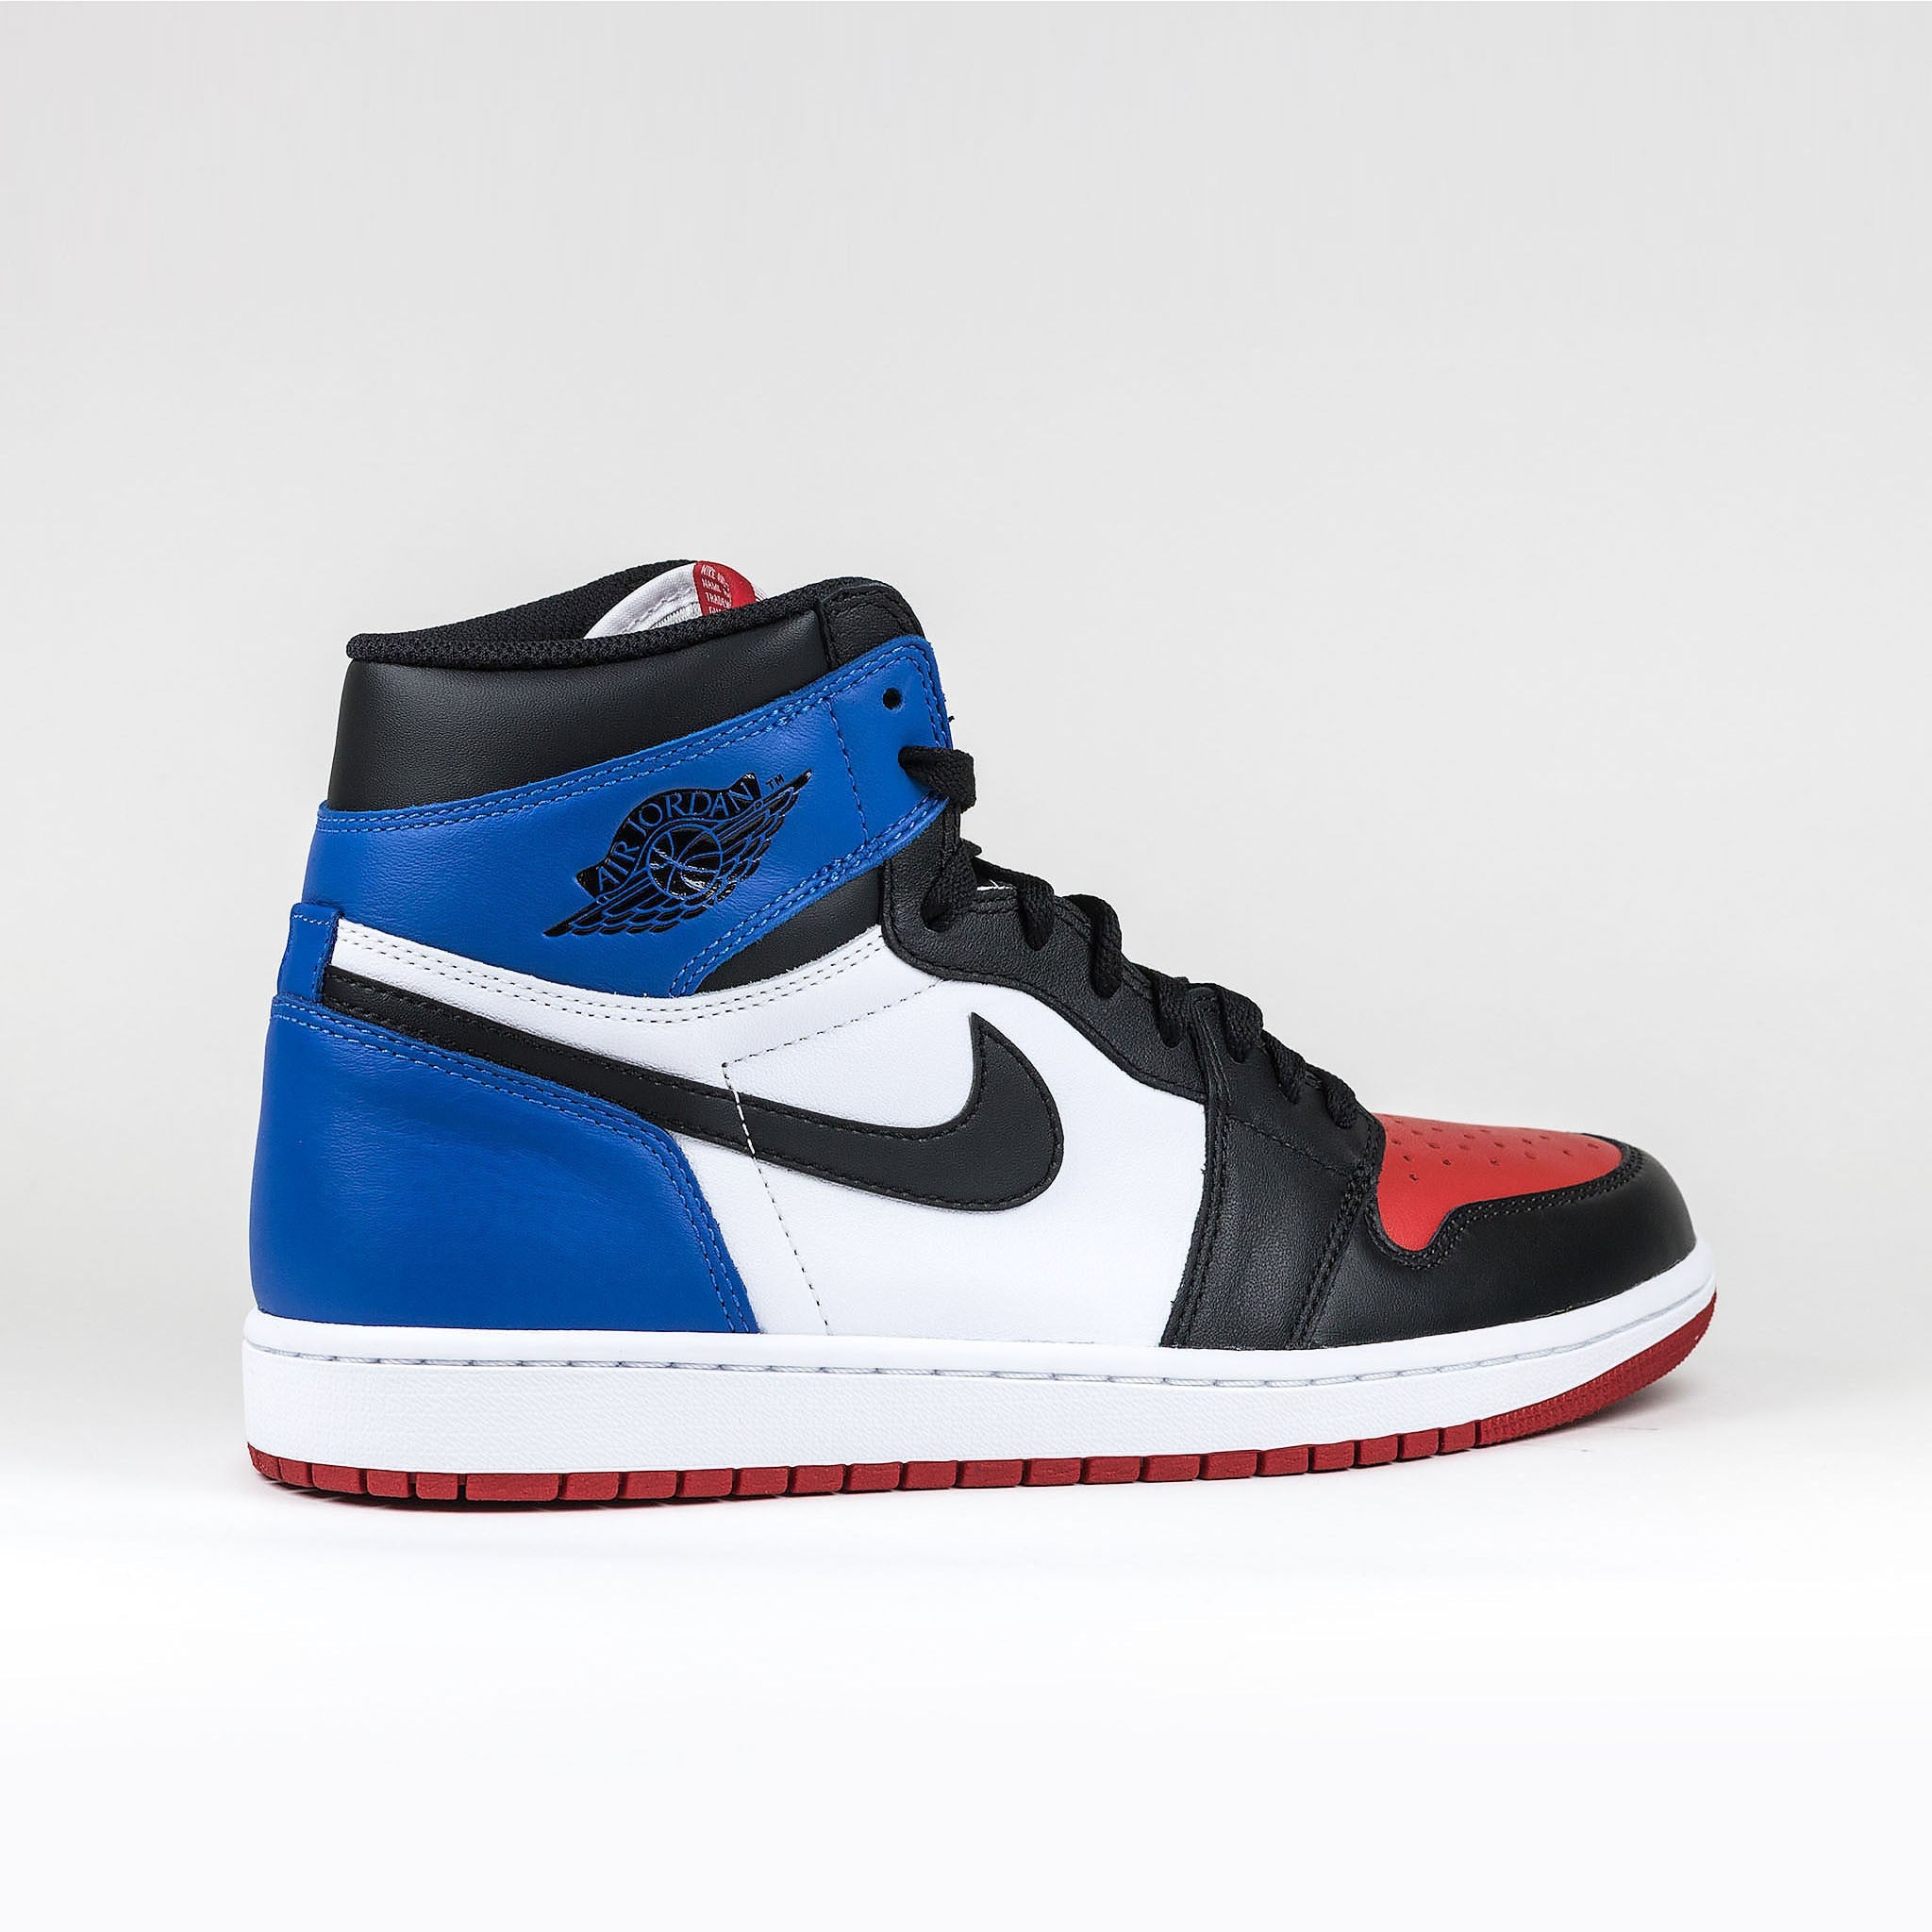 5a99d25d1069 Nike Air Jordan 1 Retro Top 3 Sneaker – Crepslocker